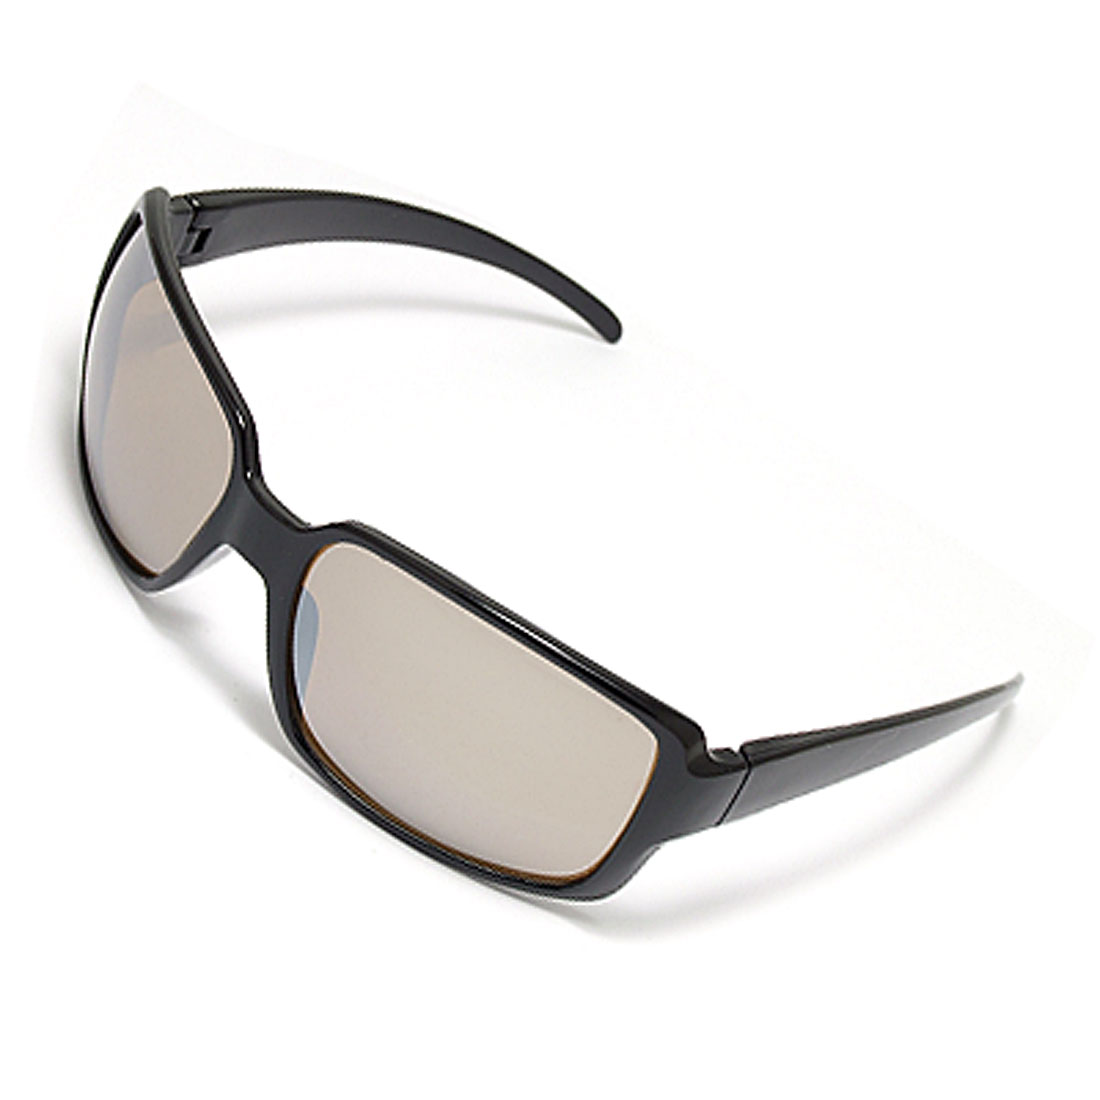 Black Full Rim Plastic Frame Fashion Unisex Sunglasses